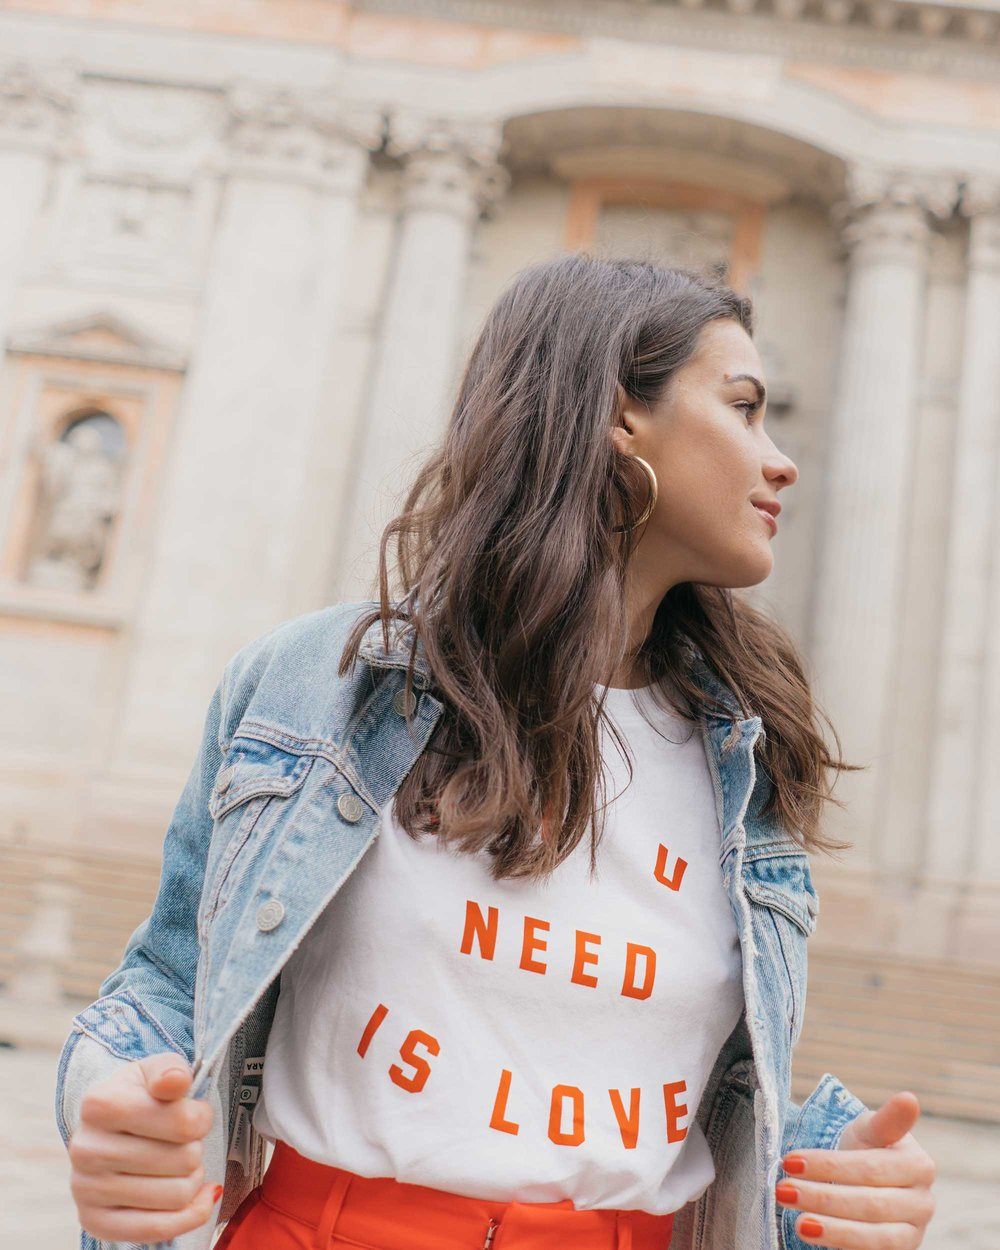 Red-Skinny-Pants,-All-You-Need-Is-Love'-Slogan-T-Shirt,-Cara-Cropped-Denim-Jacket,-Milan-Spring-Outfit-6.jpg